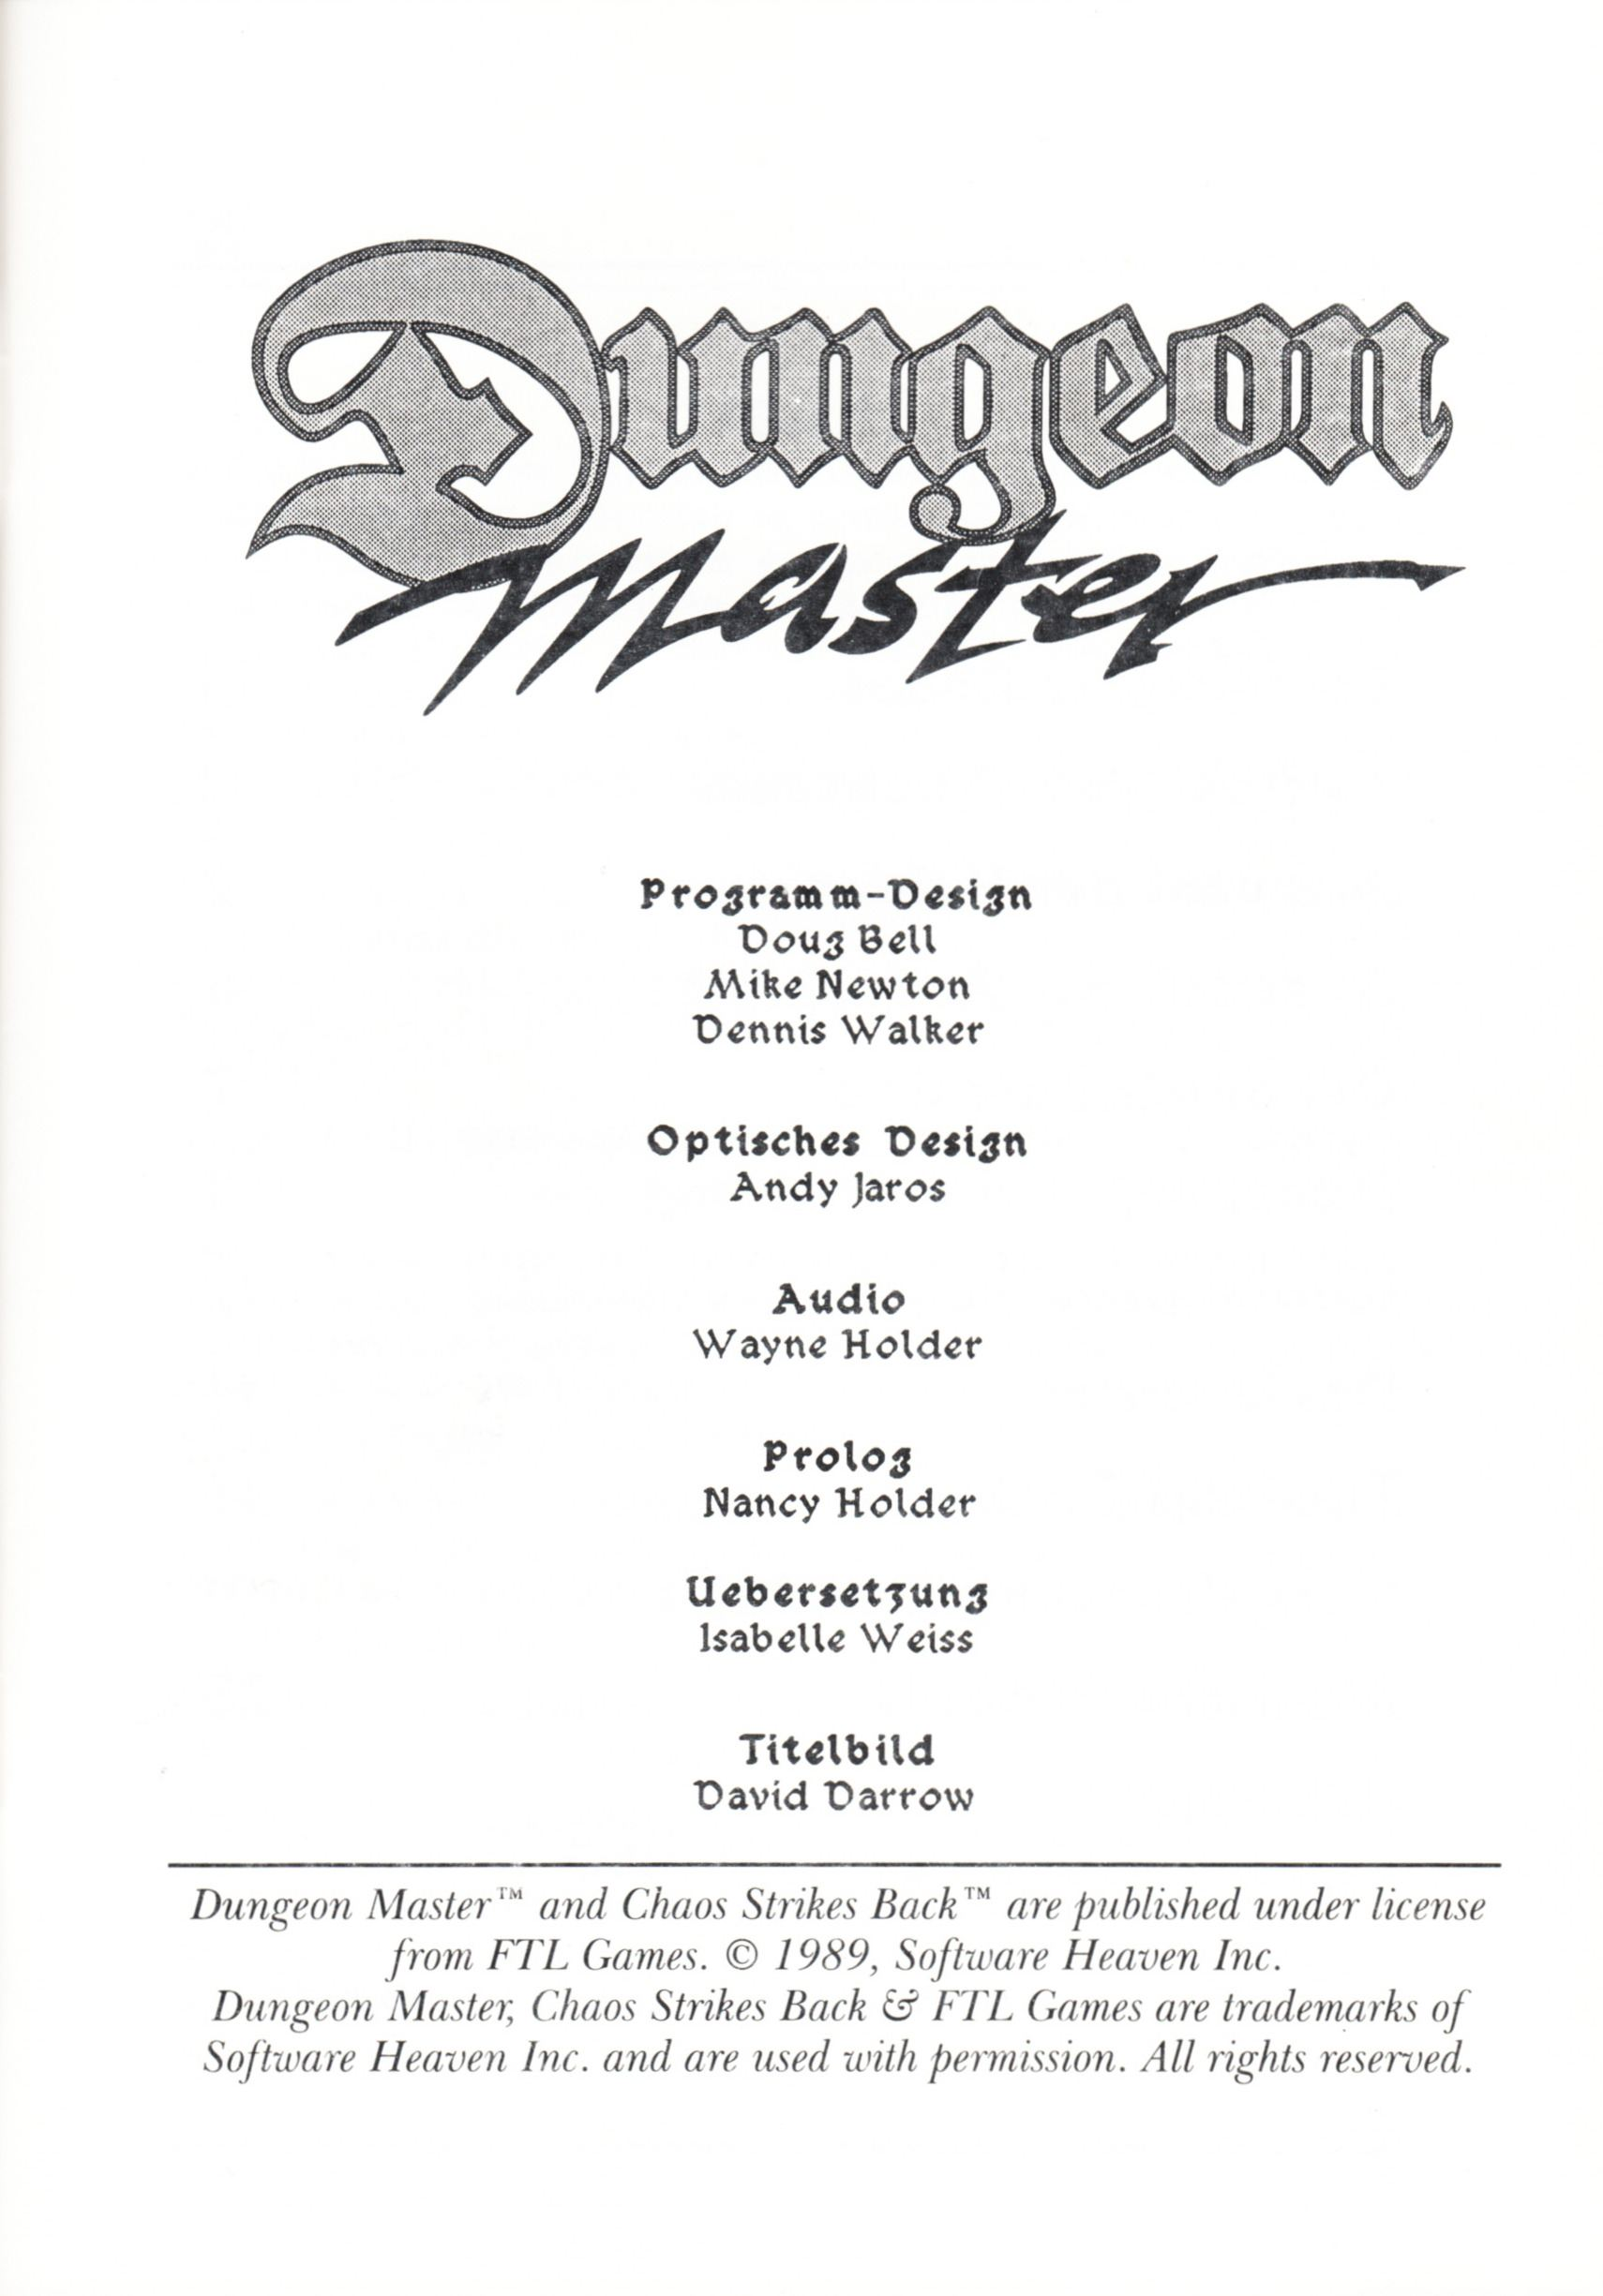 Game - Dungeon Master - DE - PC - Psygnosis - Manual - Page 003 - Scan